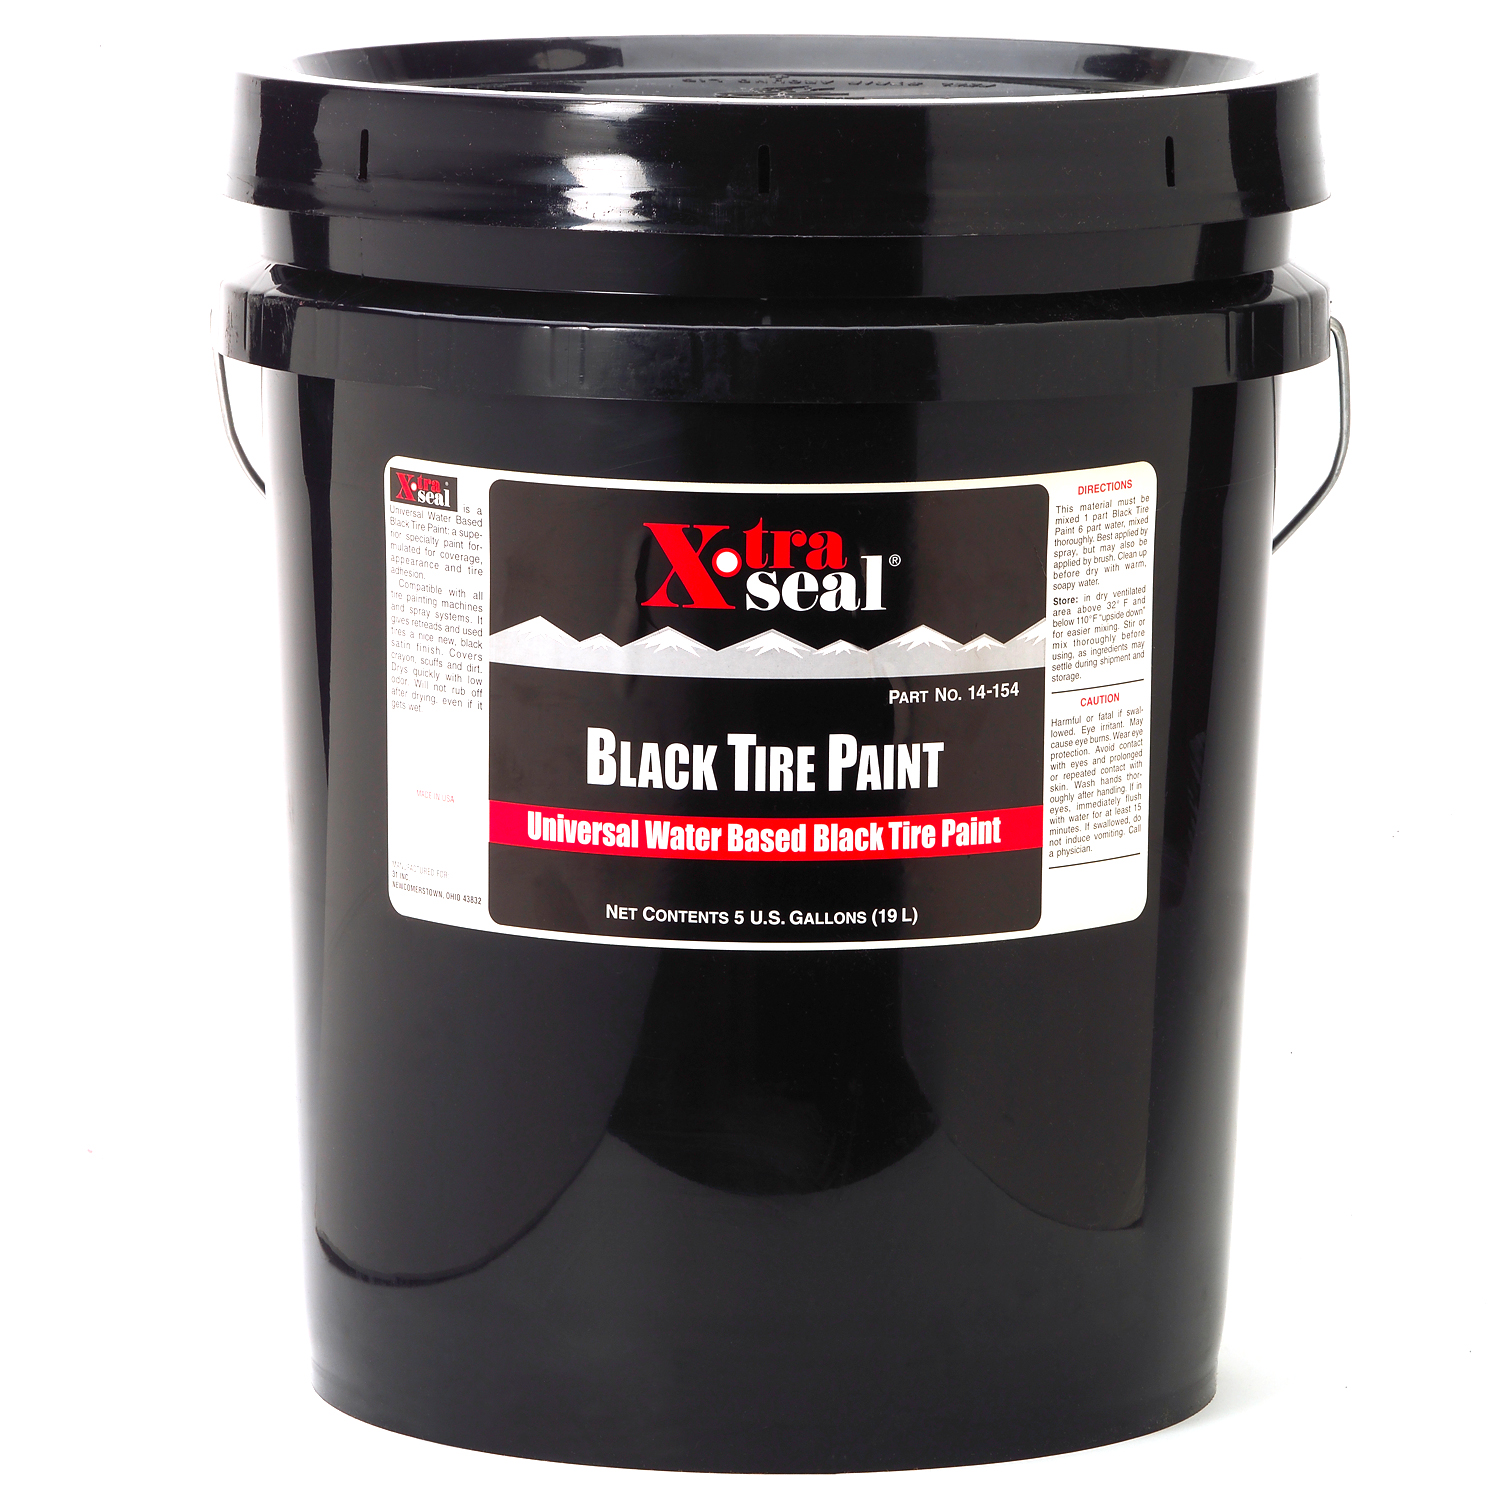 14 154 5 gallon 19l black tire paint ready to use